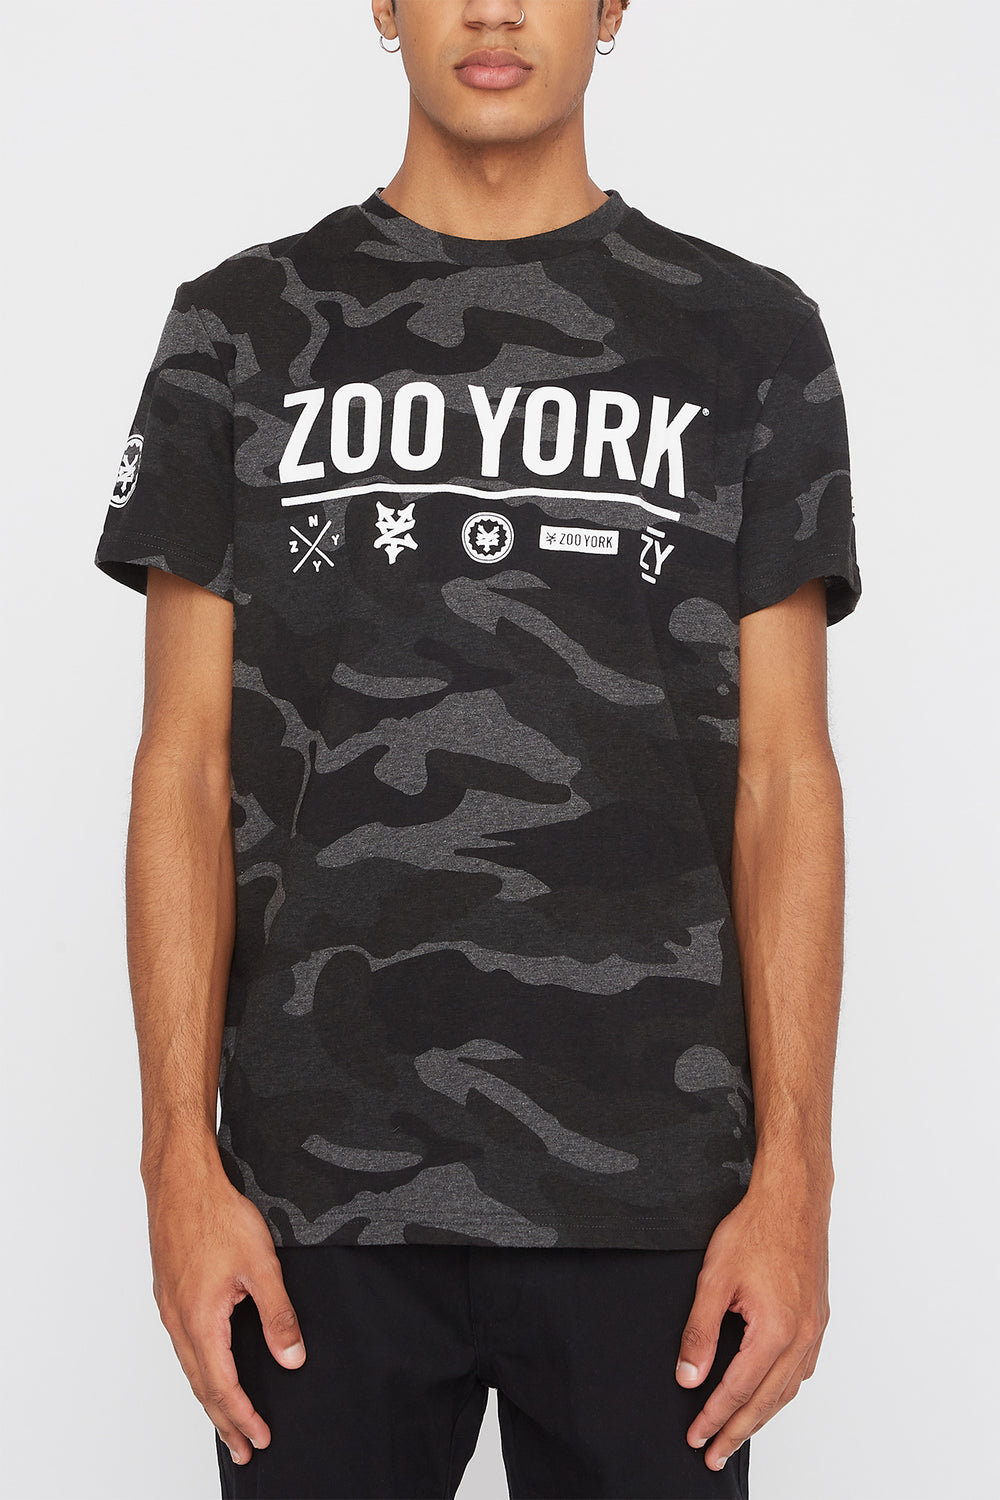 Zoo York Mens Camo Logo T-Shirt Black with White